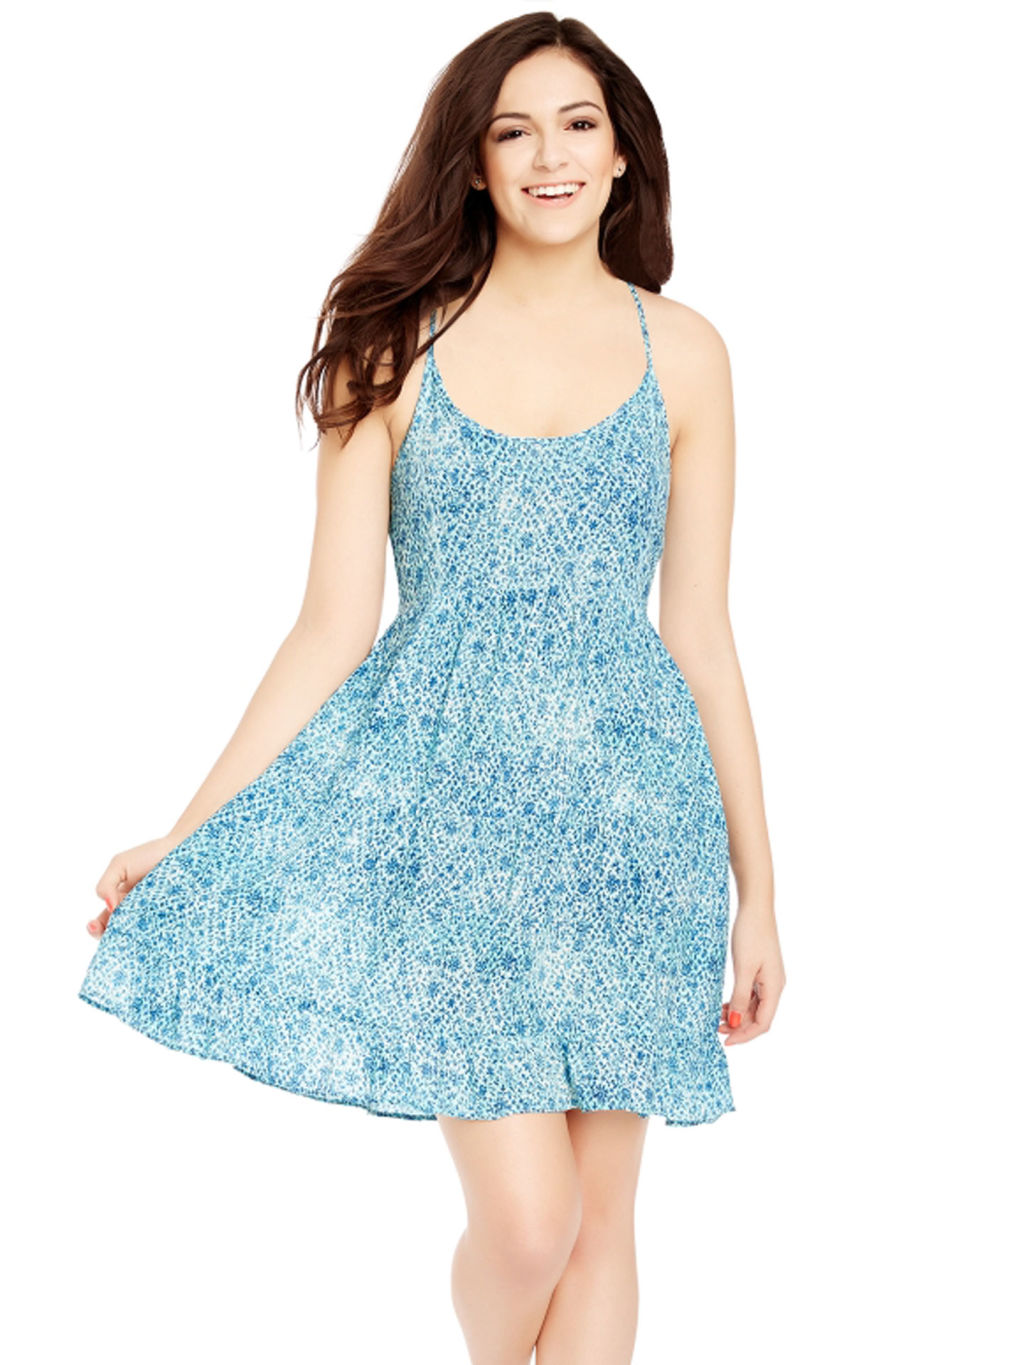 Discount Summer Clothing with FREE Shipping & Exchanges, and a % price guarantee. Choose from a huge selection of Discount Summer Clothing styles.